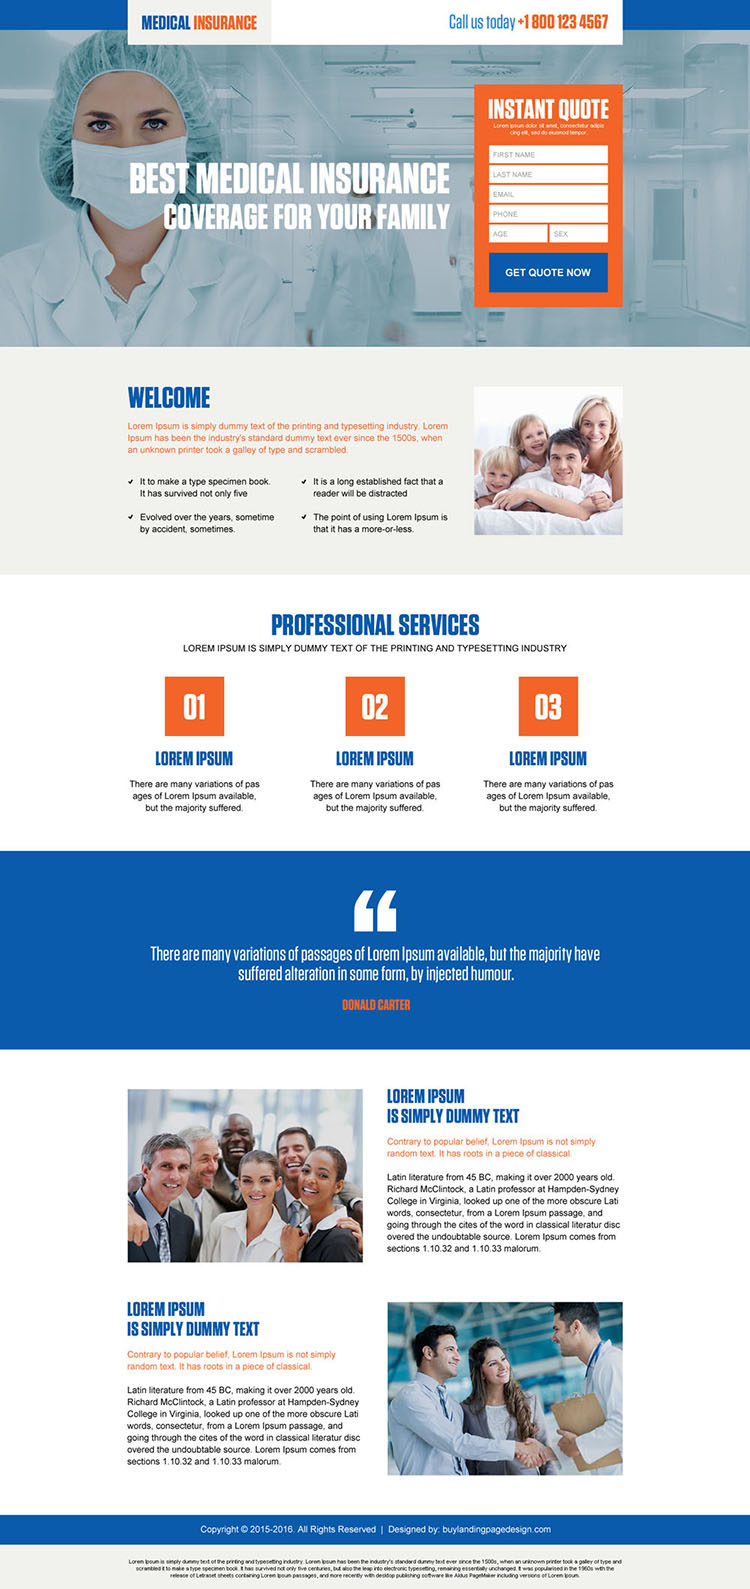 best medical insurance coverage for family lead magnet landing page design